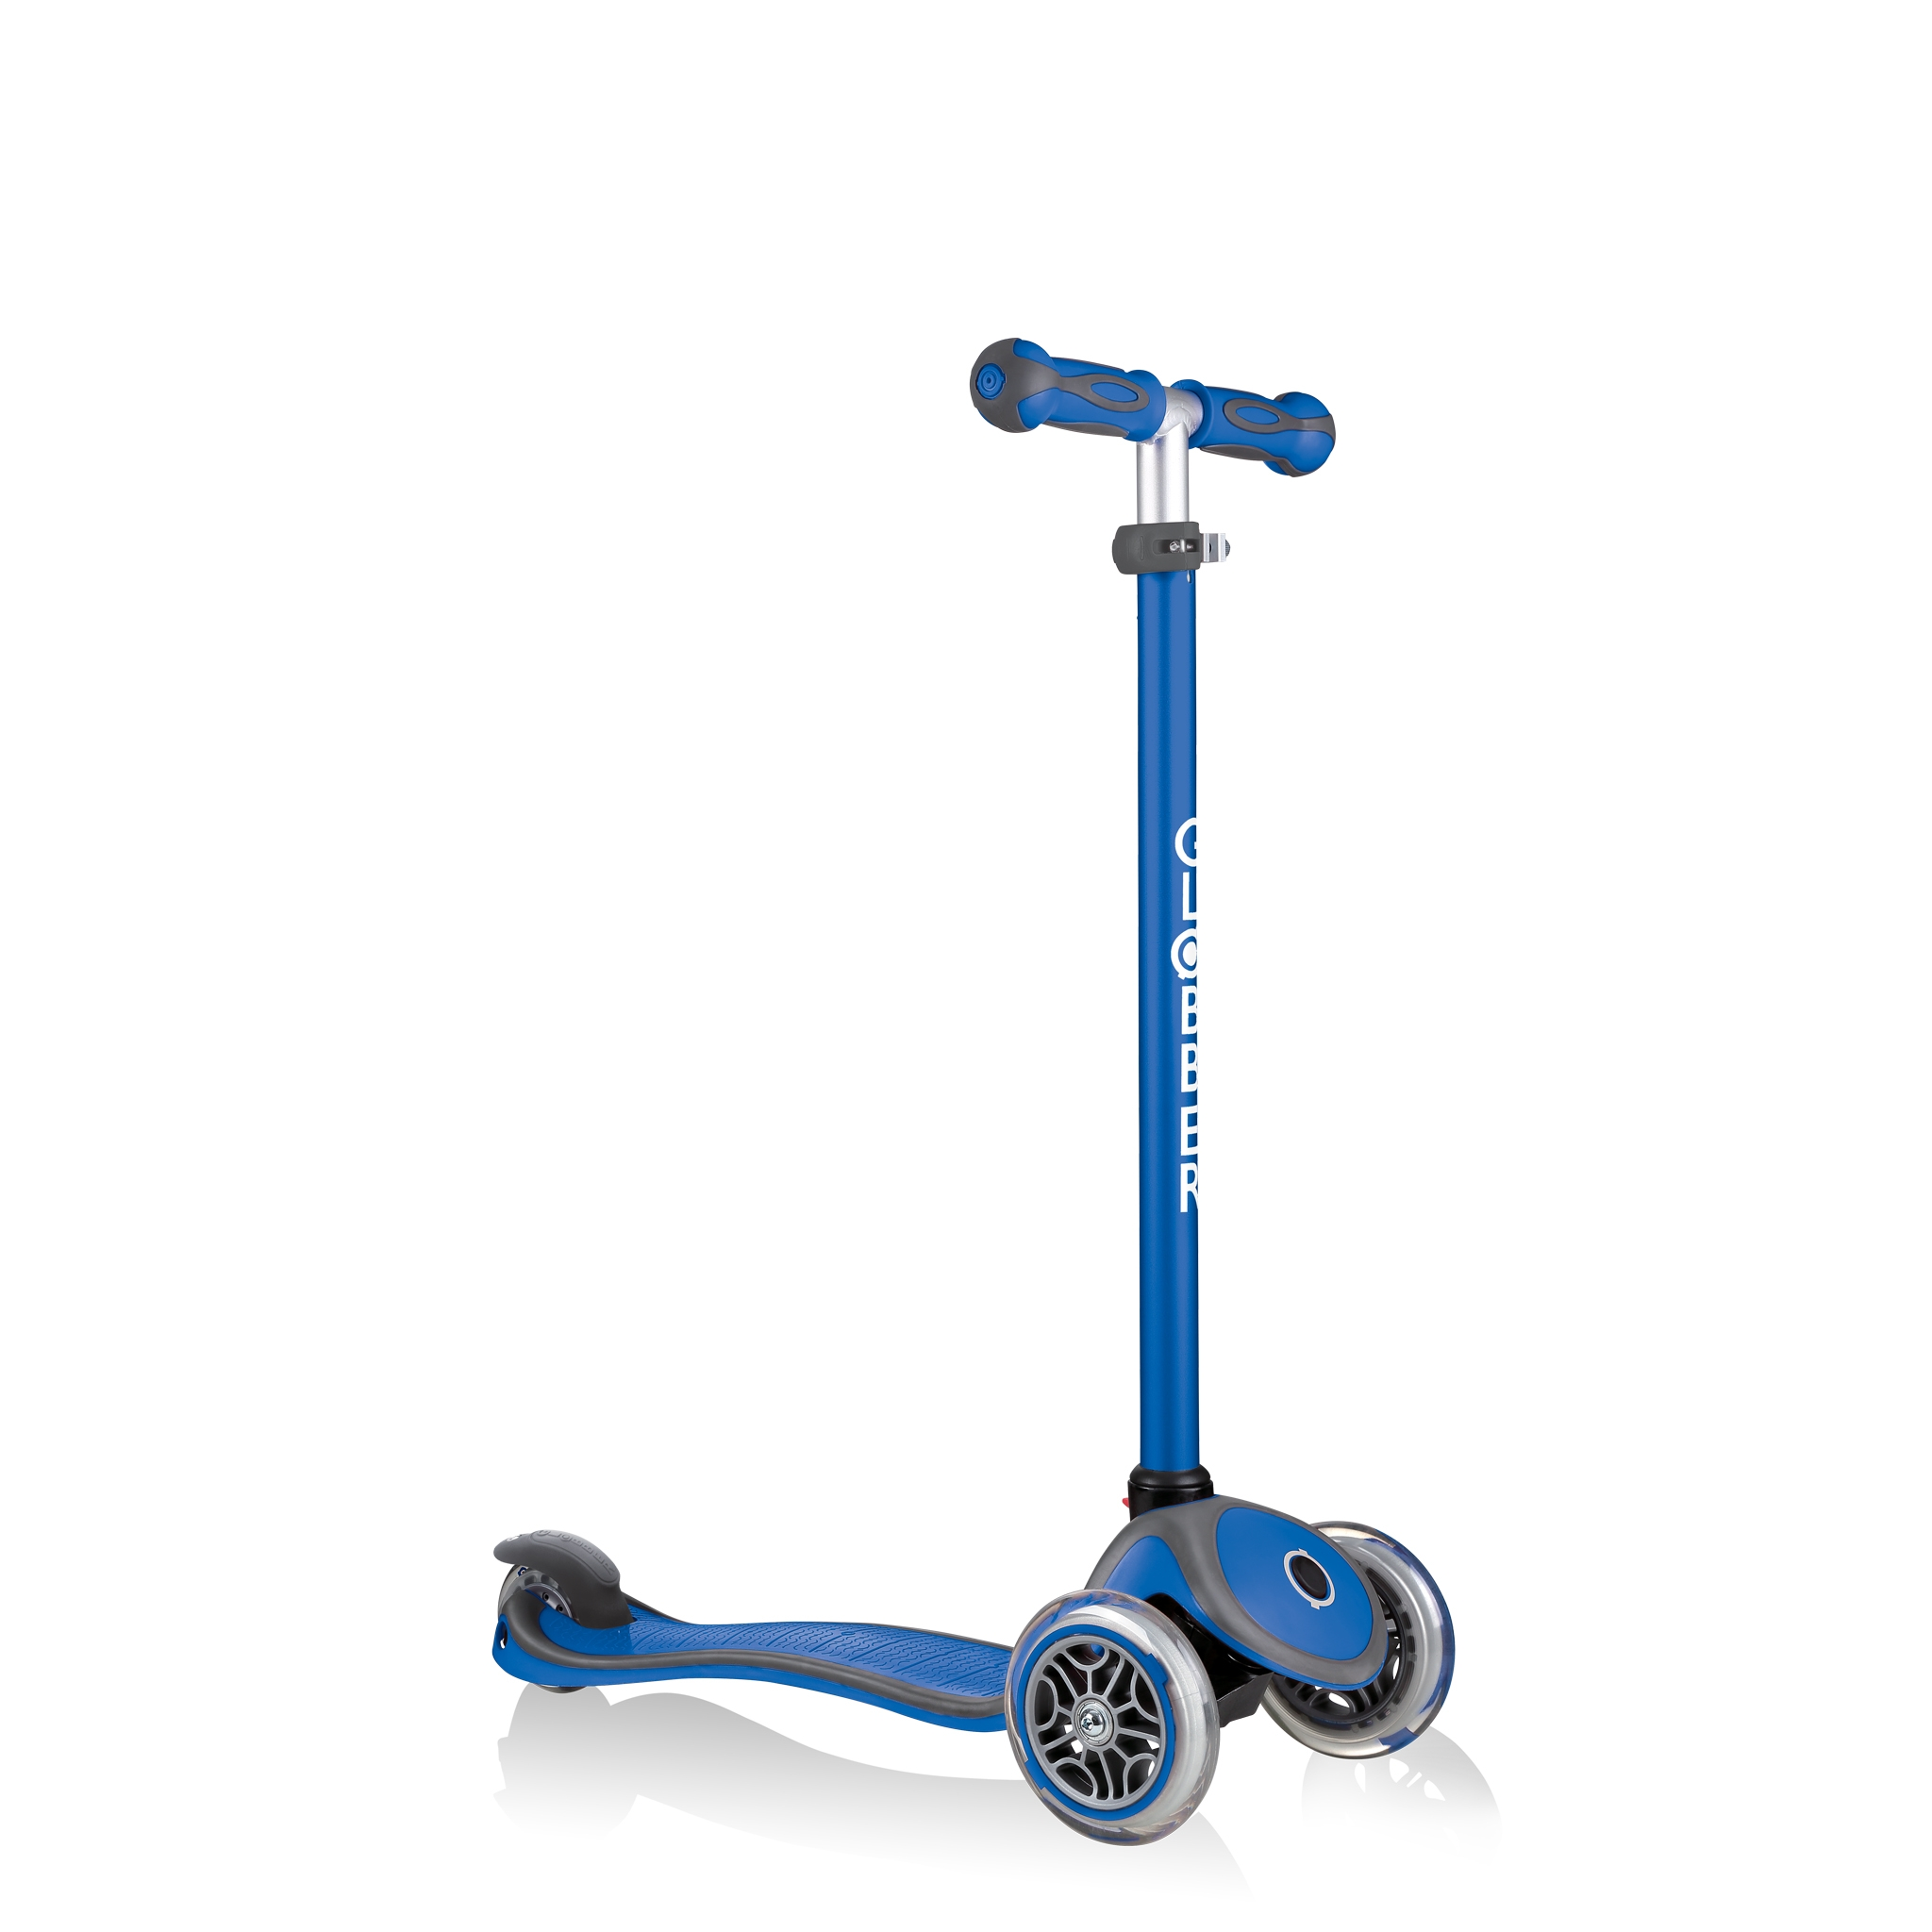 GO-UP-COMFORT-PLAY-ride-on-walking-bike-scooter-all-in-one-with-light-and-sound-module_navy-blue 4